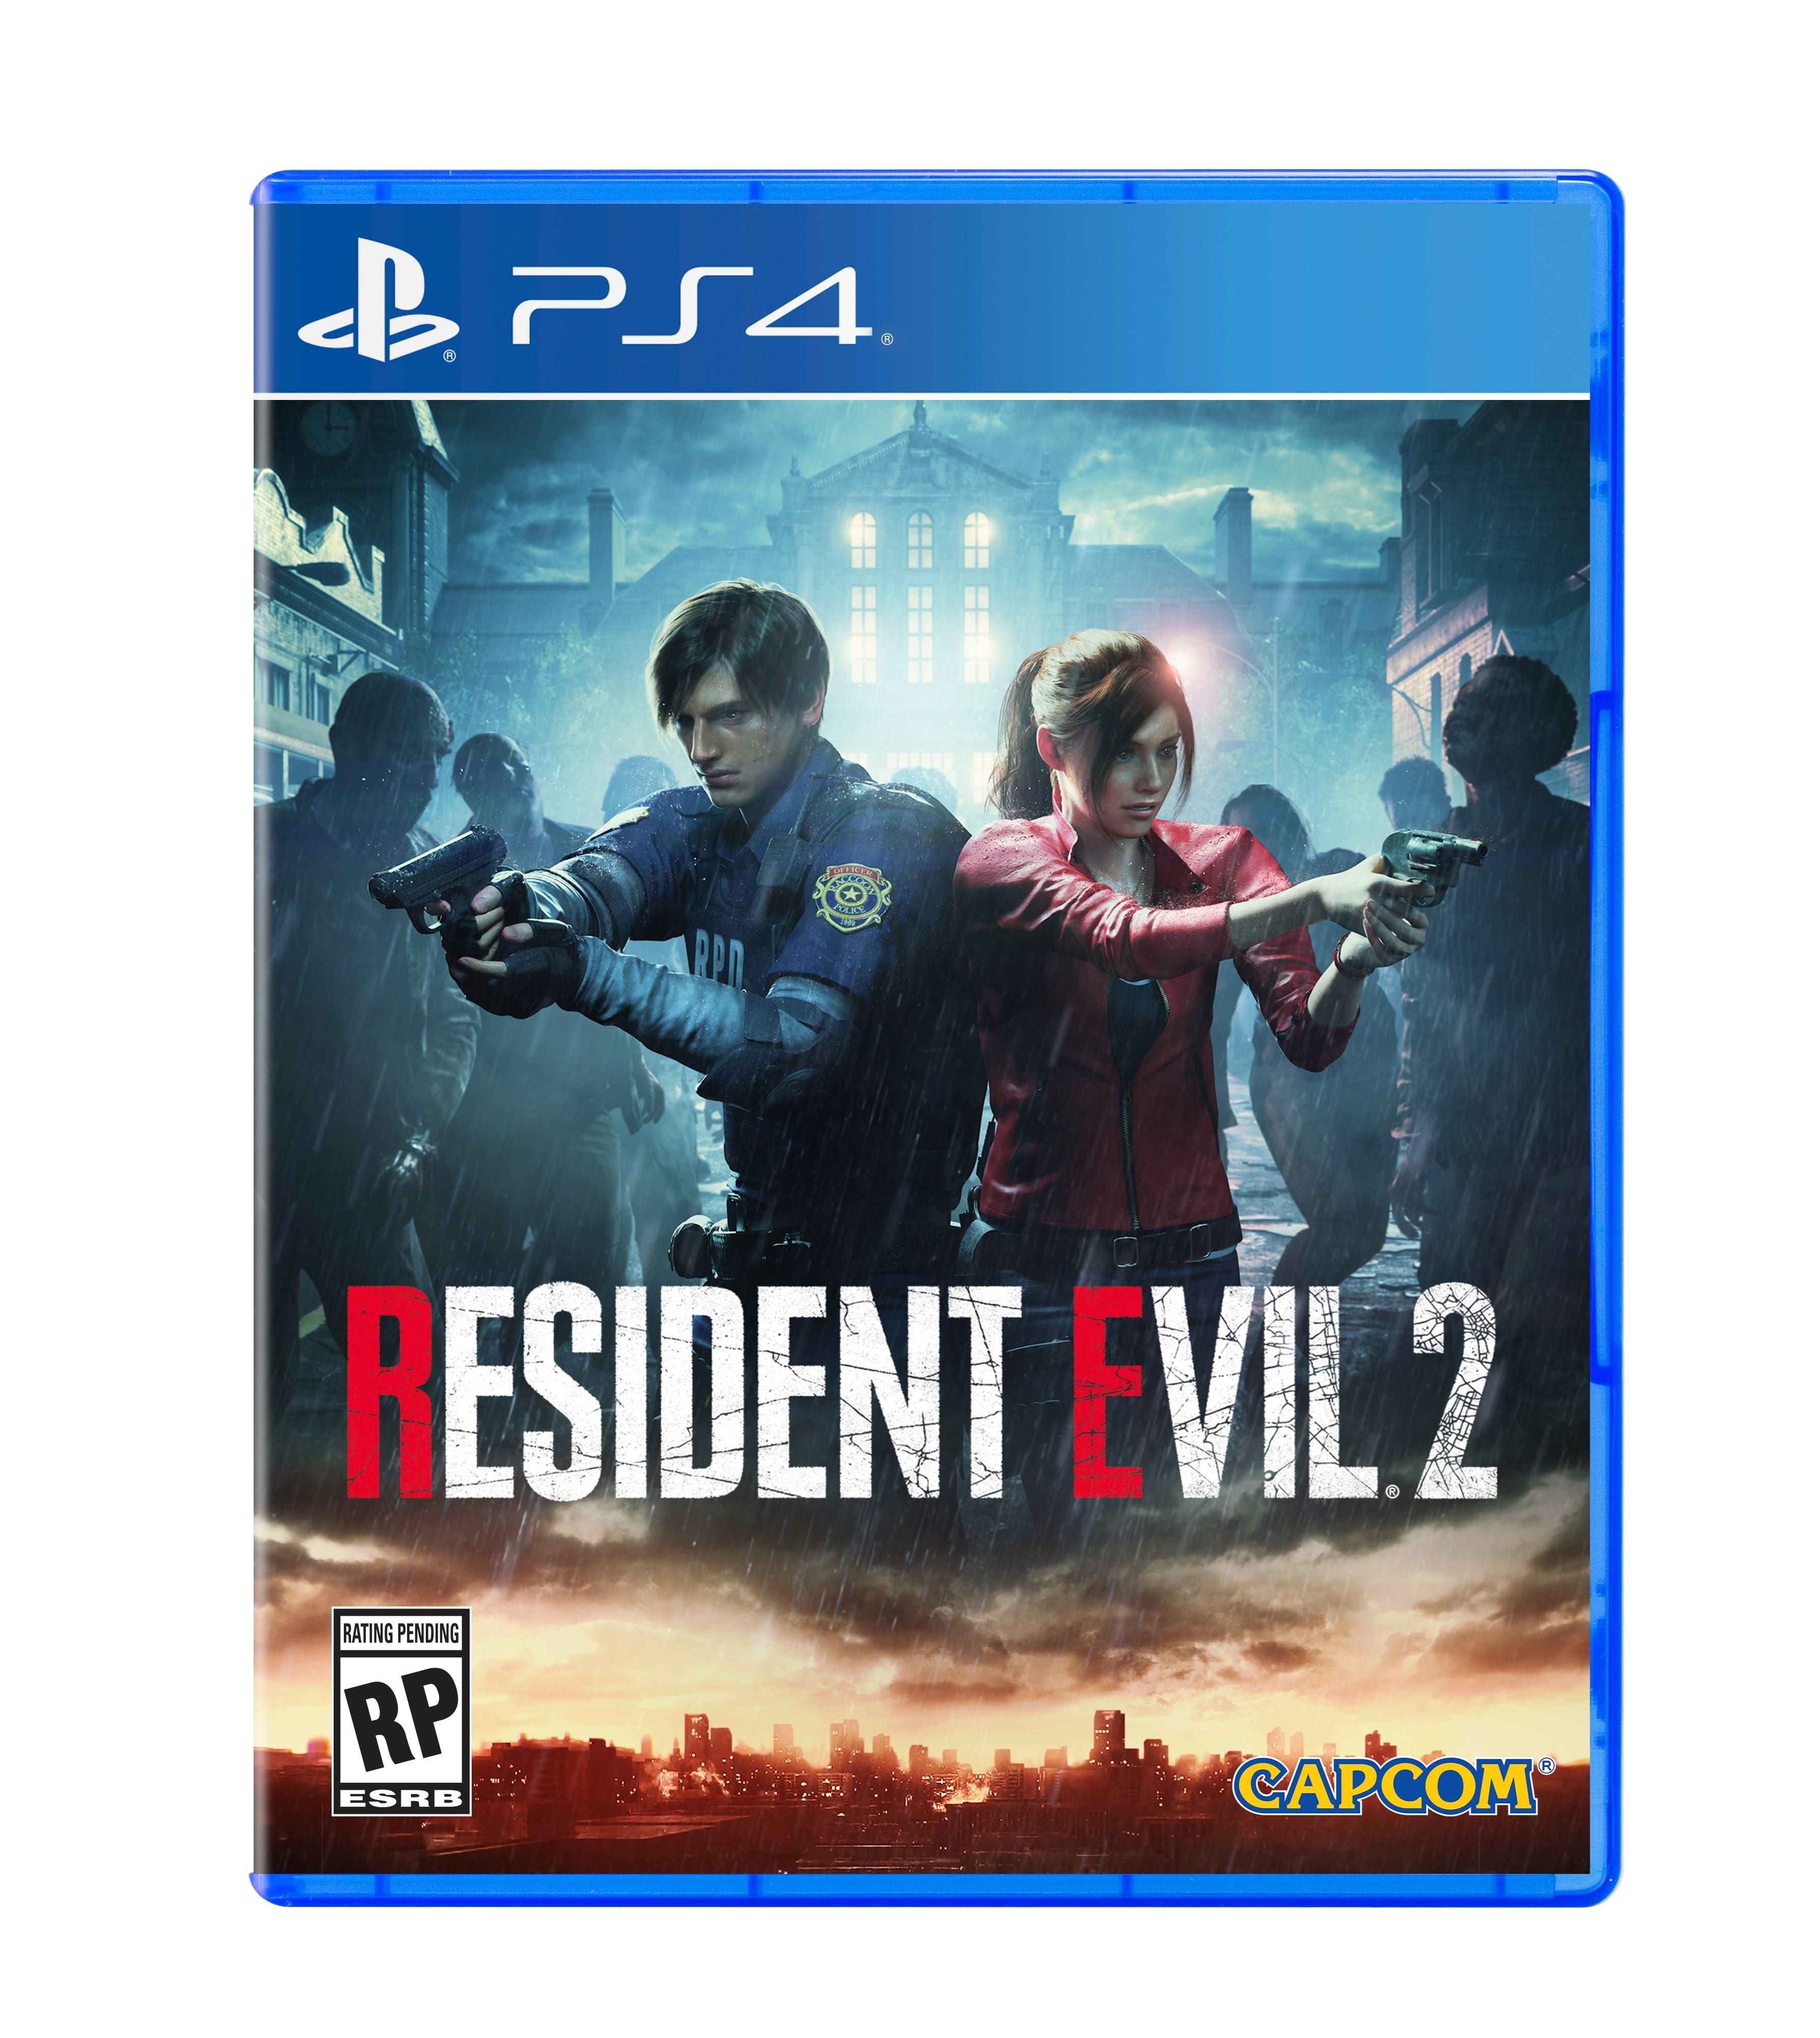 Resident Evil 2 for Playstation 4 in store for $15.00 (YMMV)